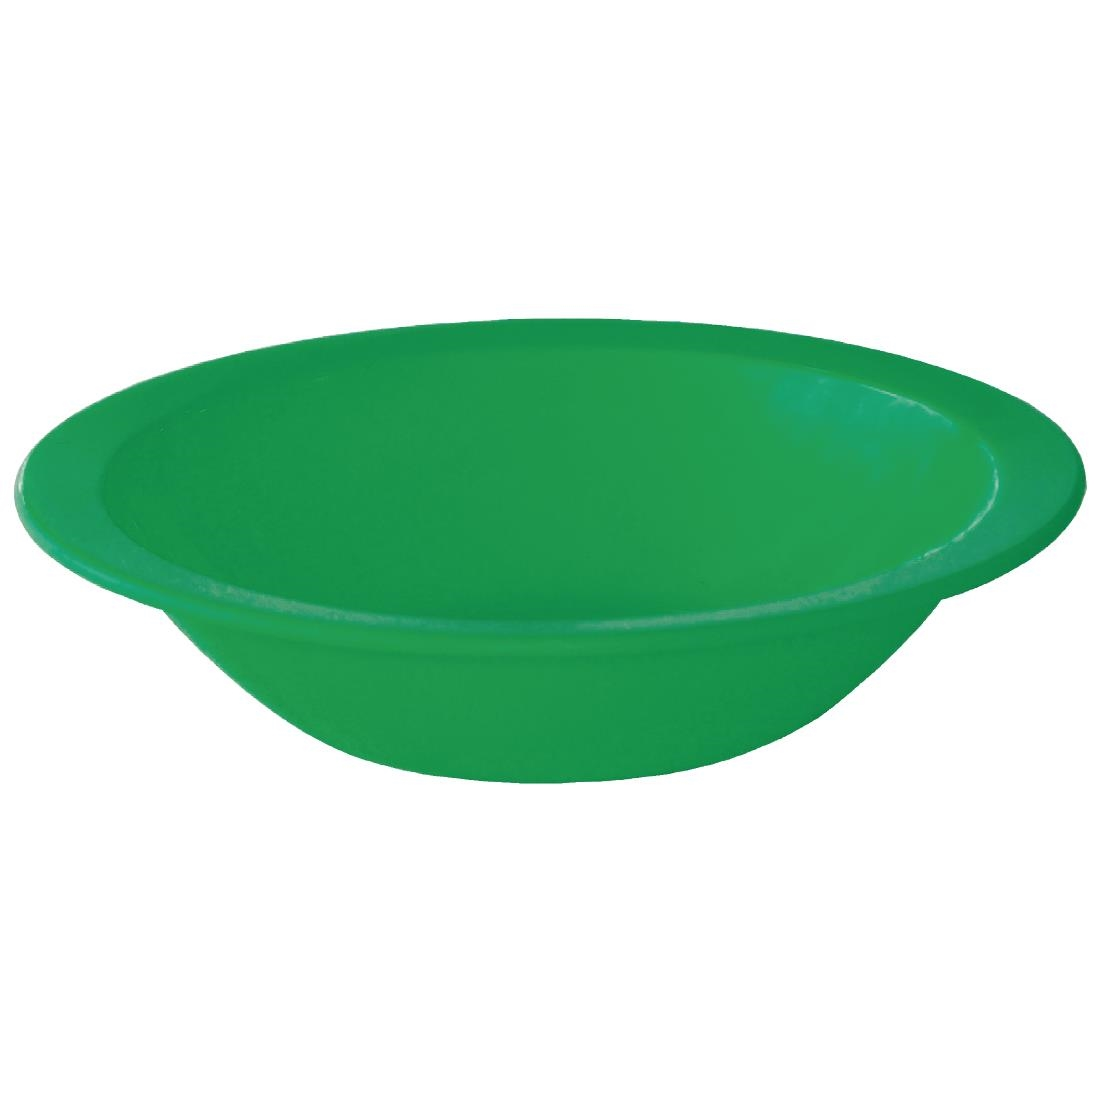 Bowl 14oz – Green